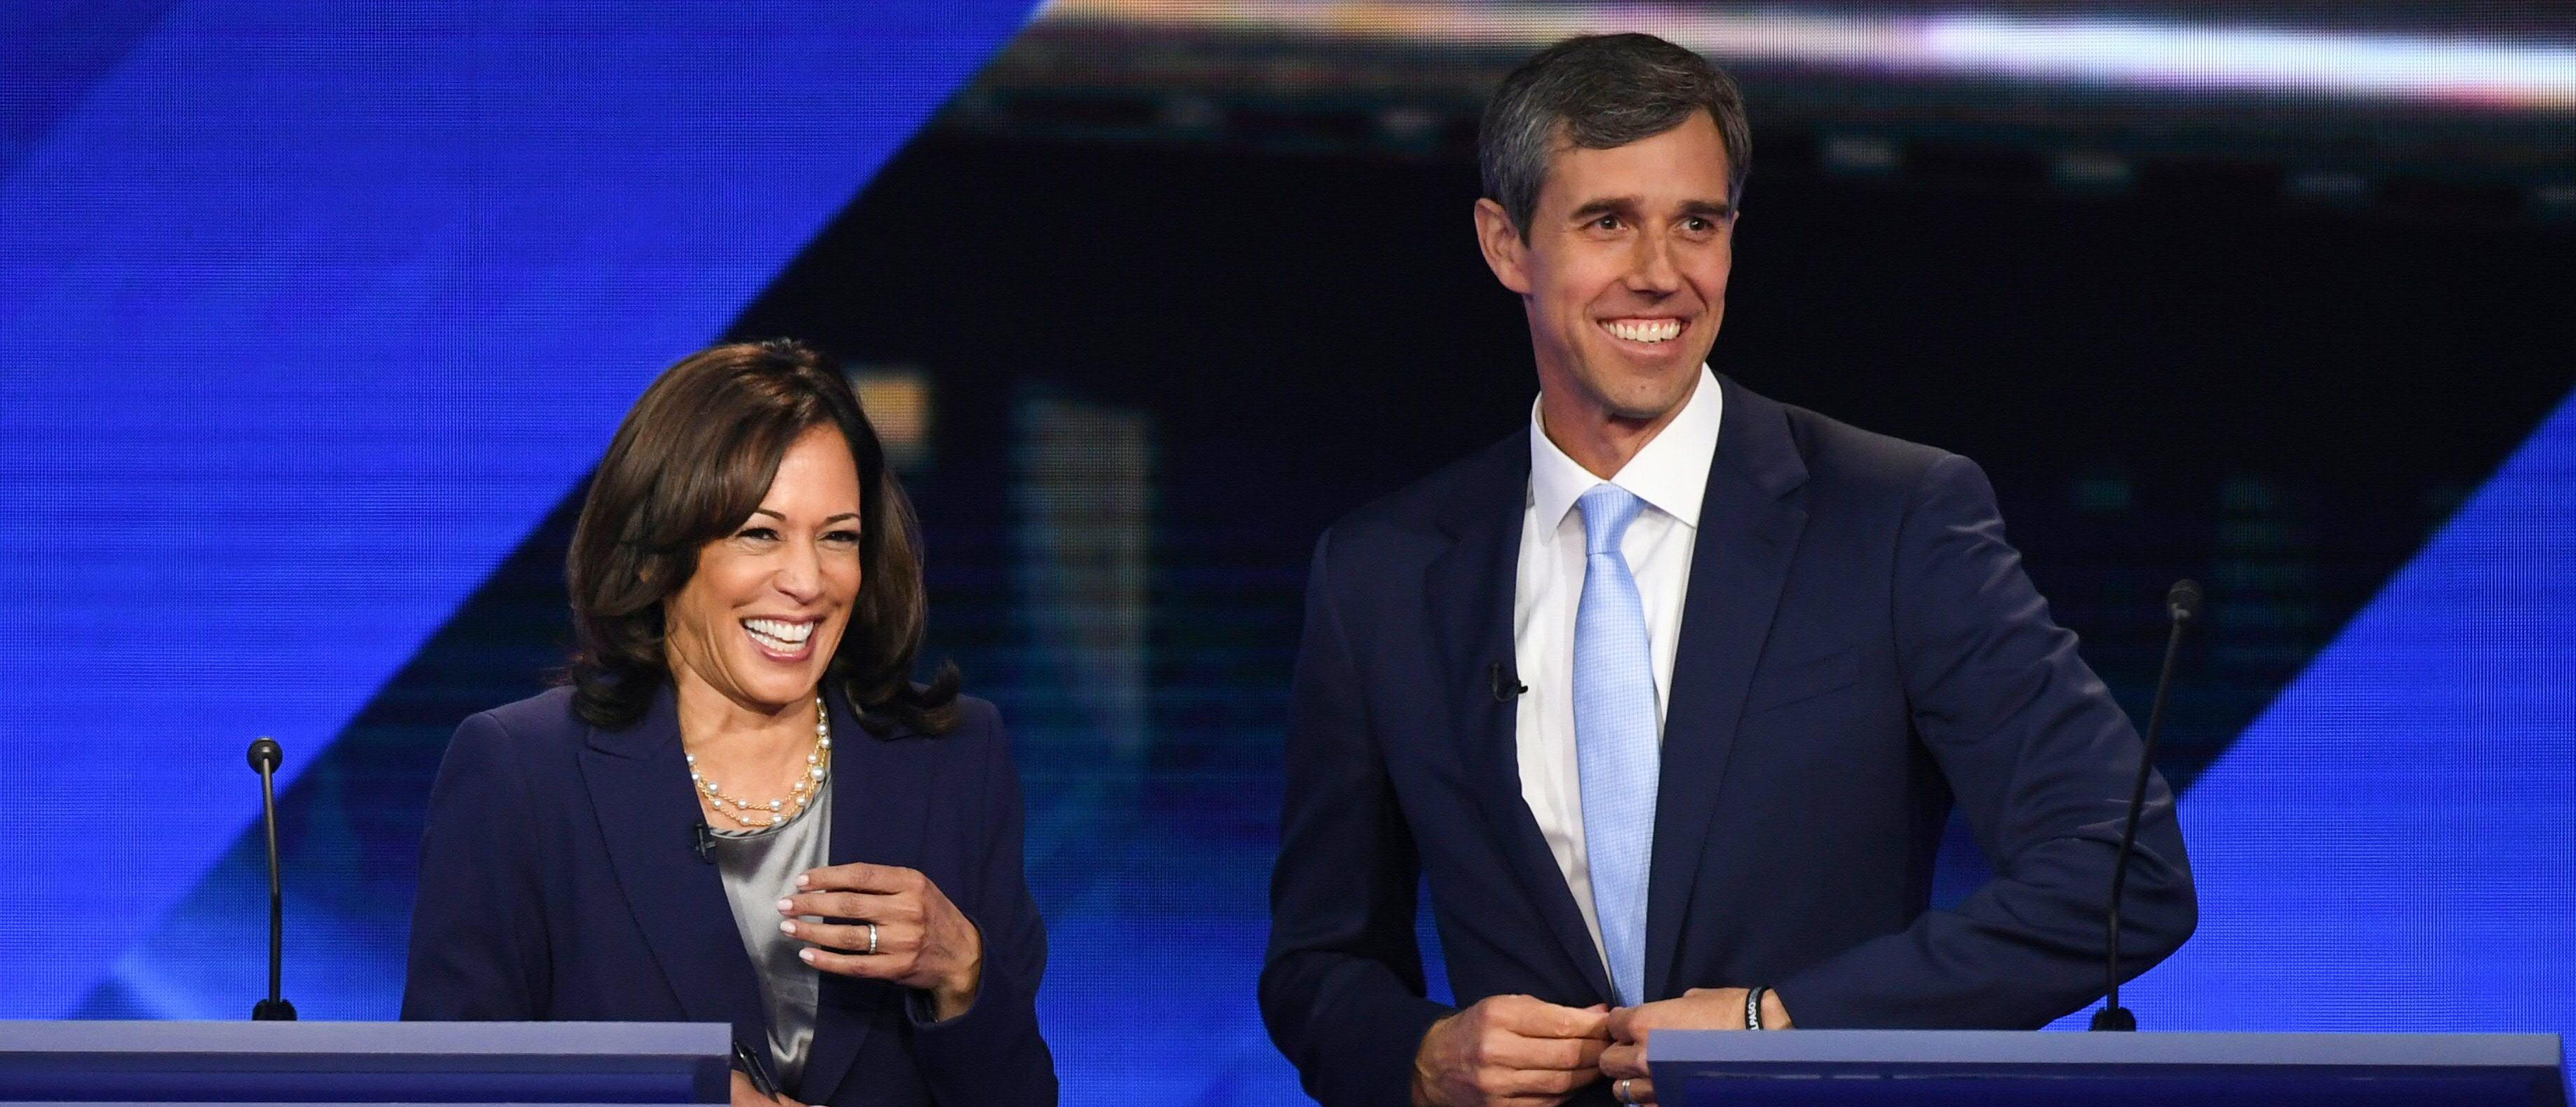 2020 Is Here, And The 'Woke' Democrats Keep Losing